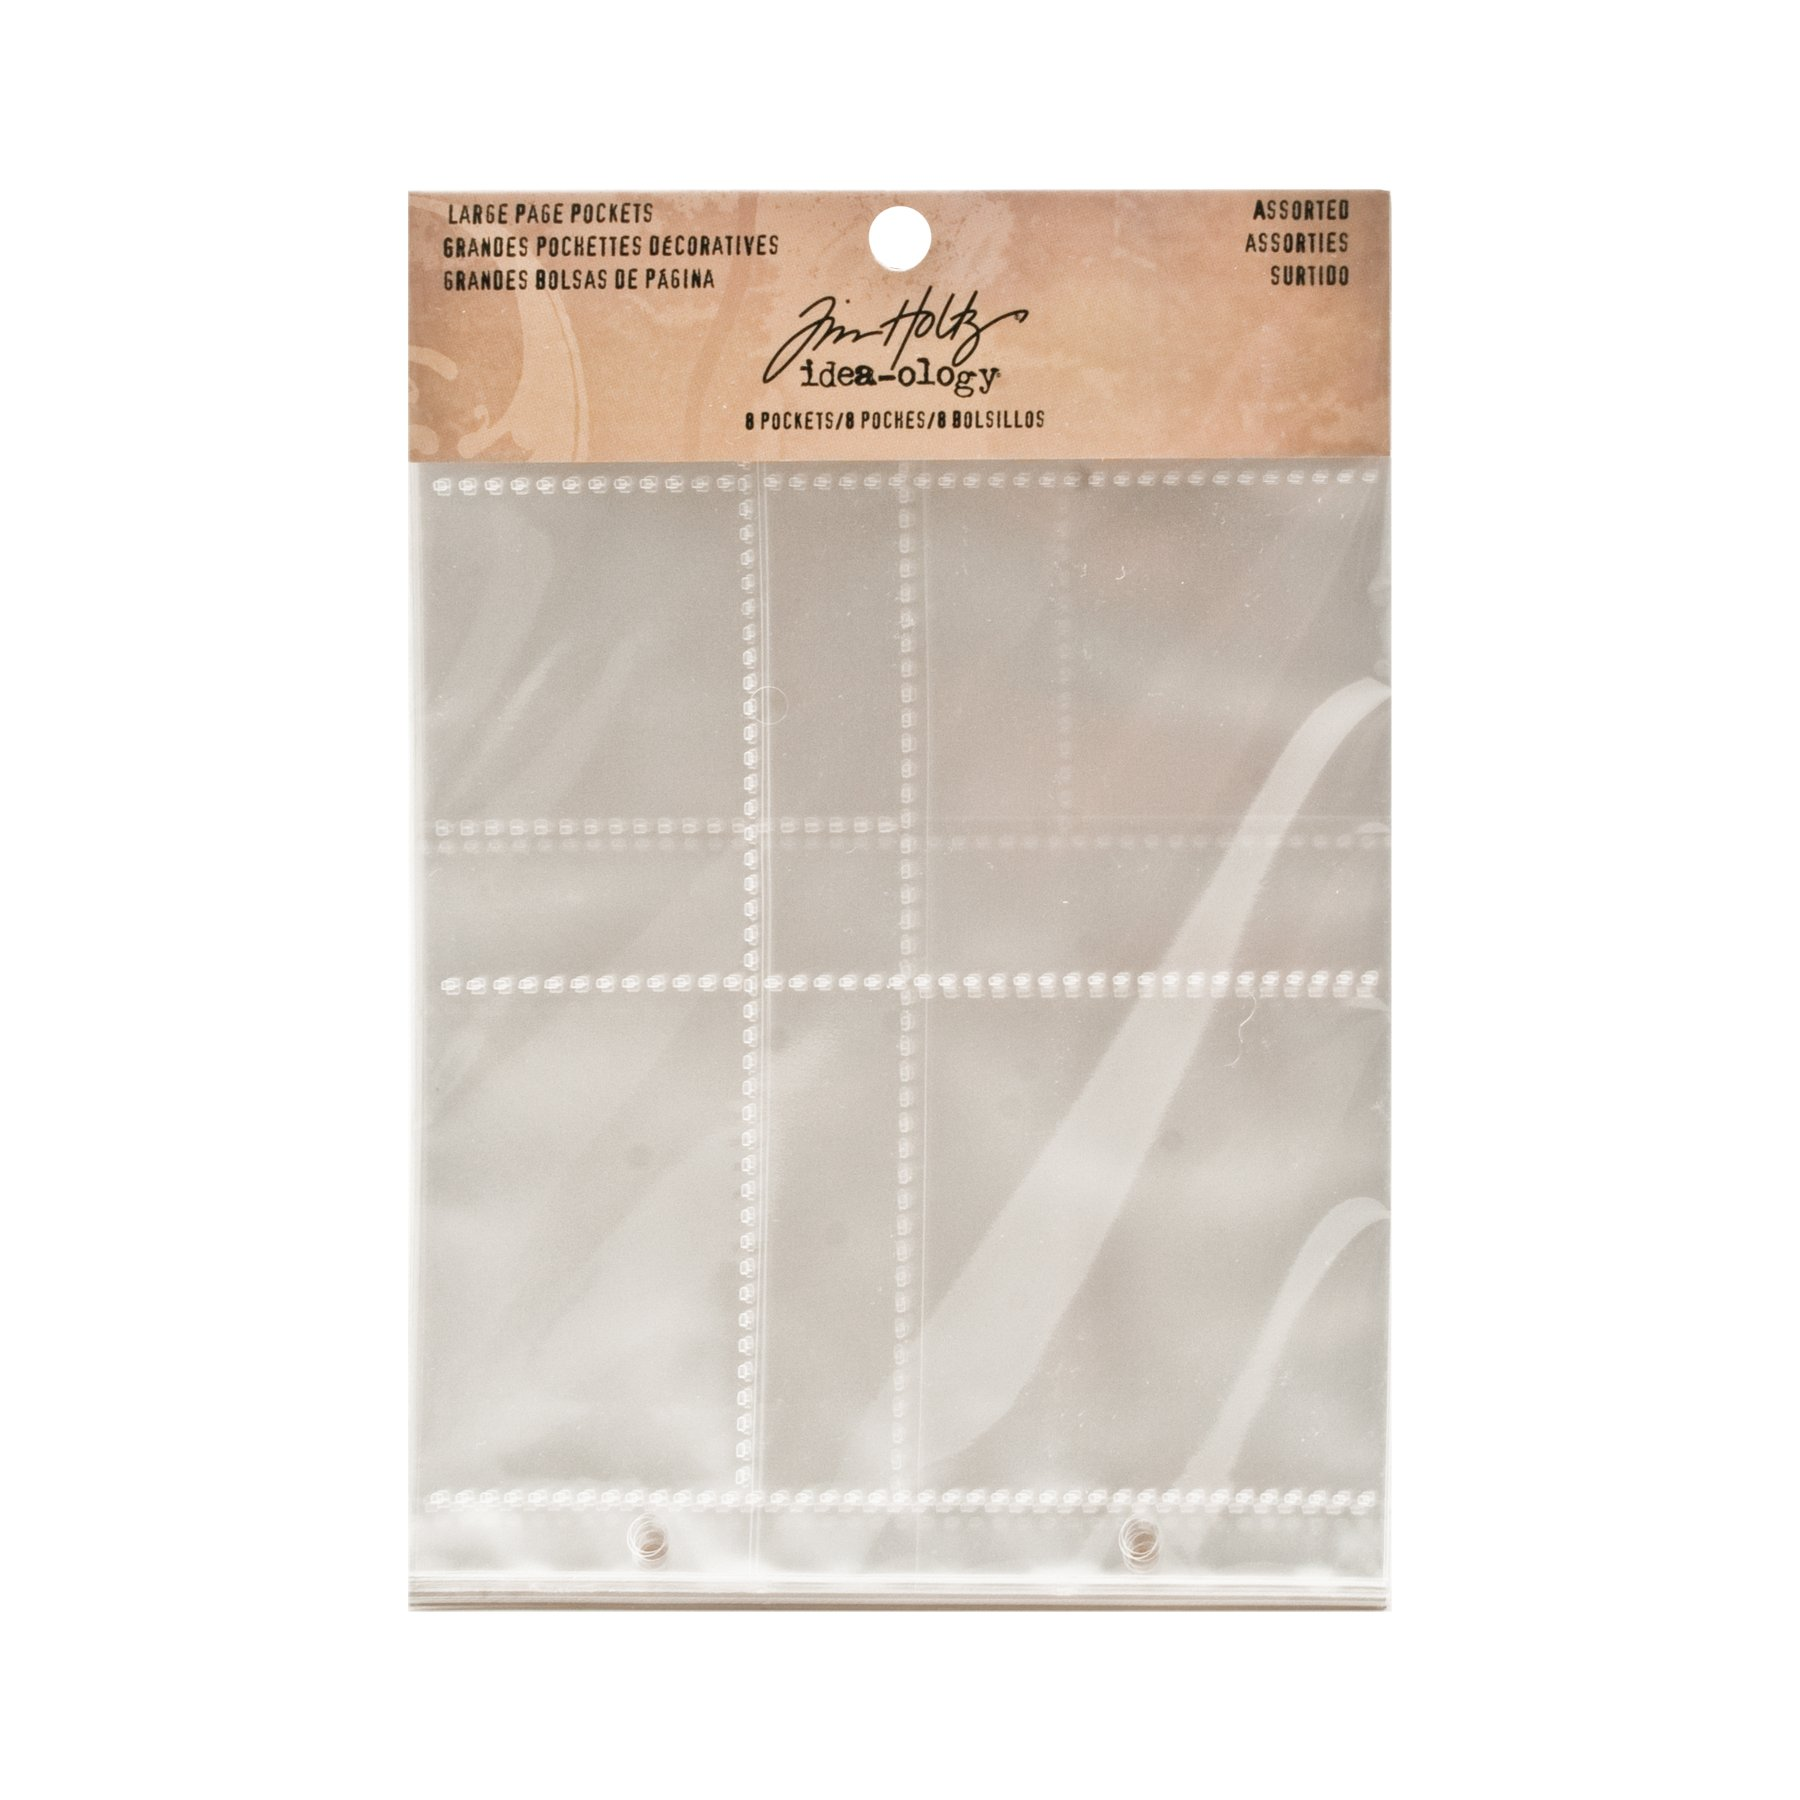 Large Page Pockets by Tim Holtz Idea-ology, Assorted Configurations, Set of 12, TH93140